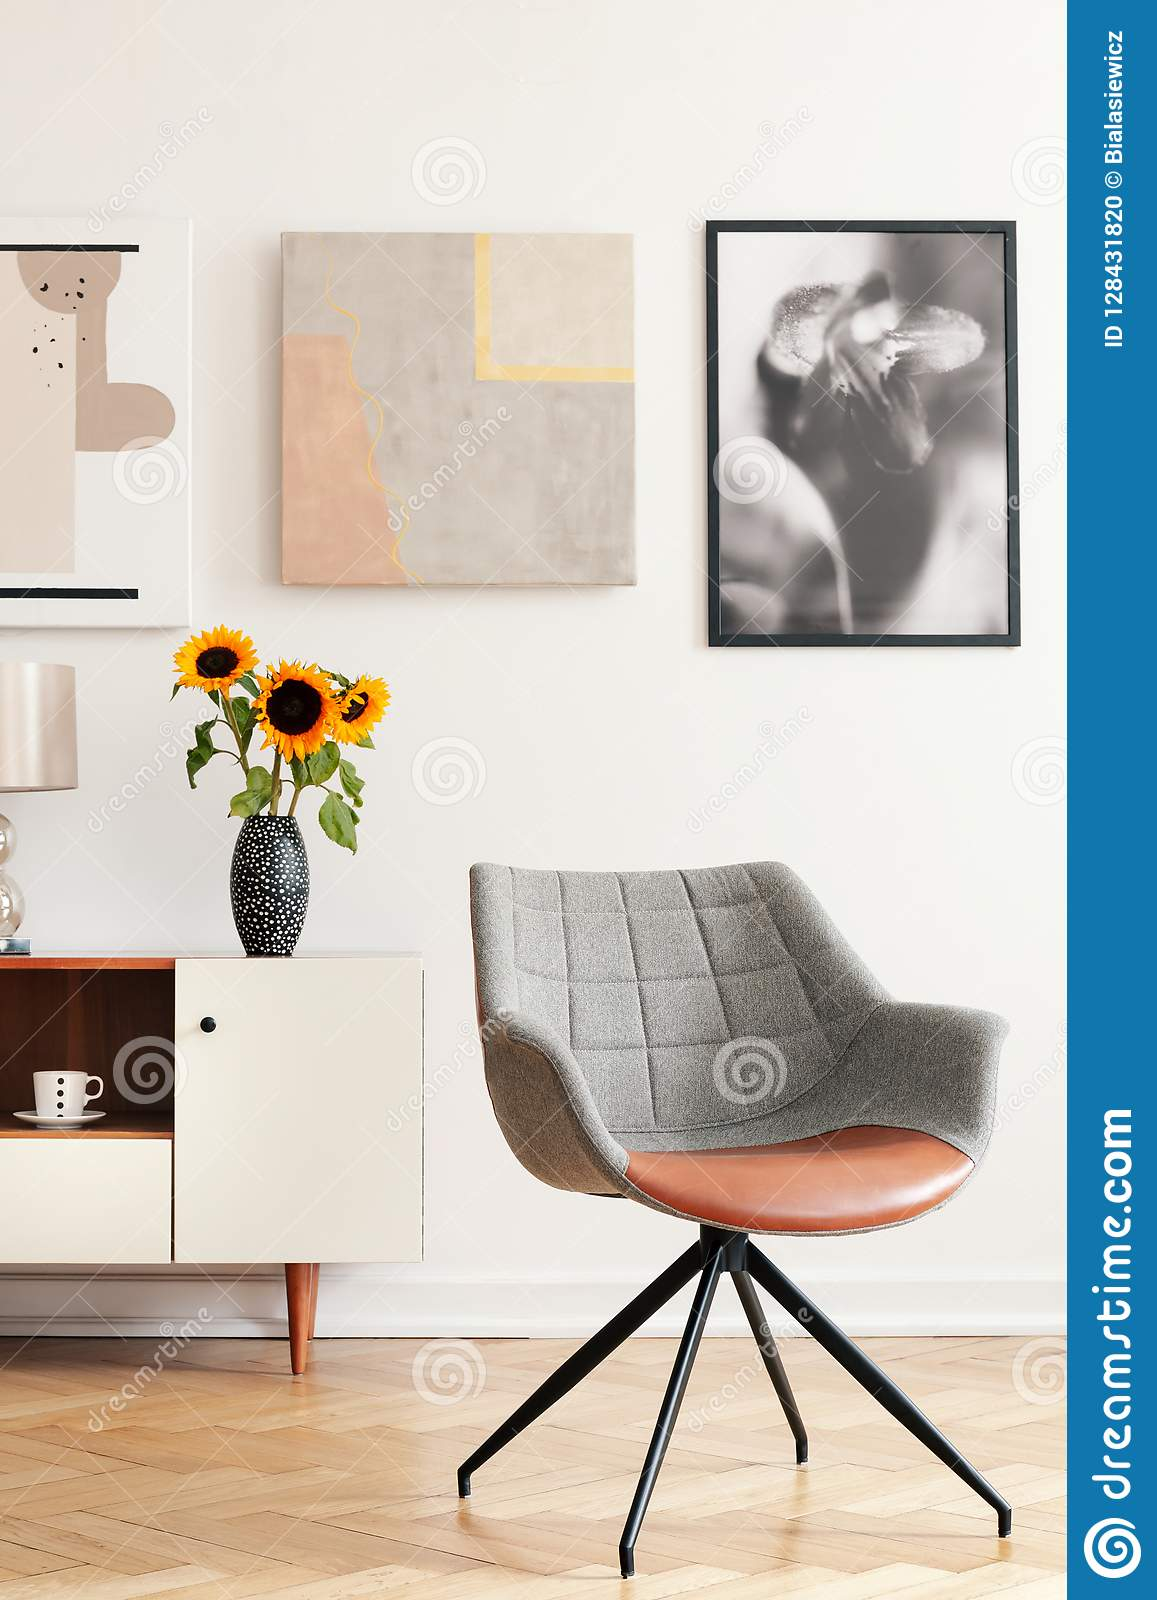 Grey armchair and sunflowers on cabinet in white living room interior with posters